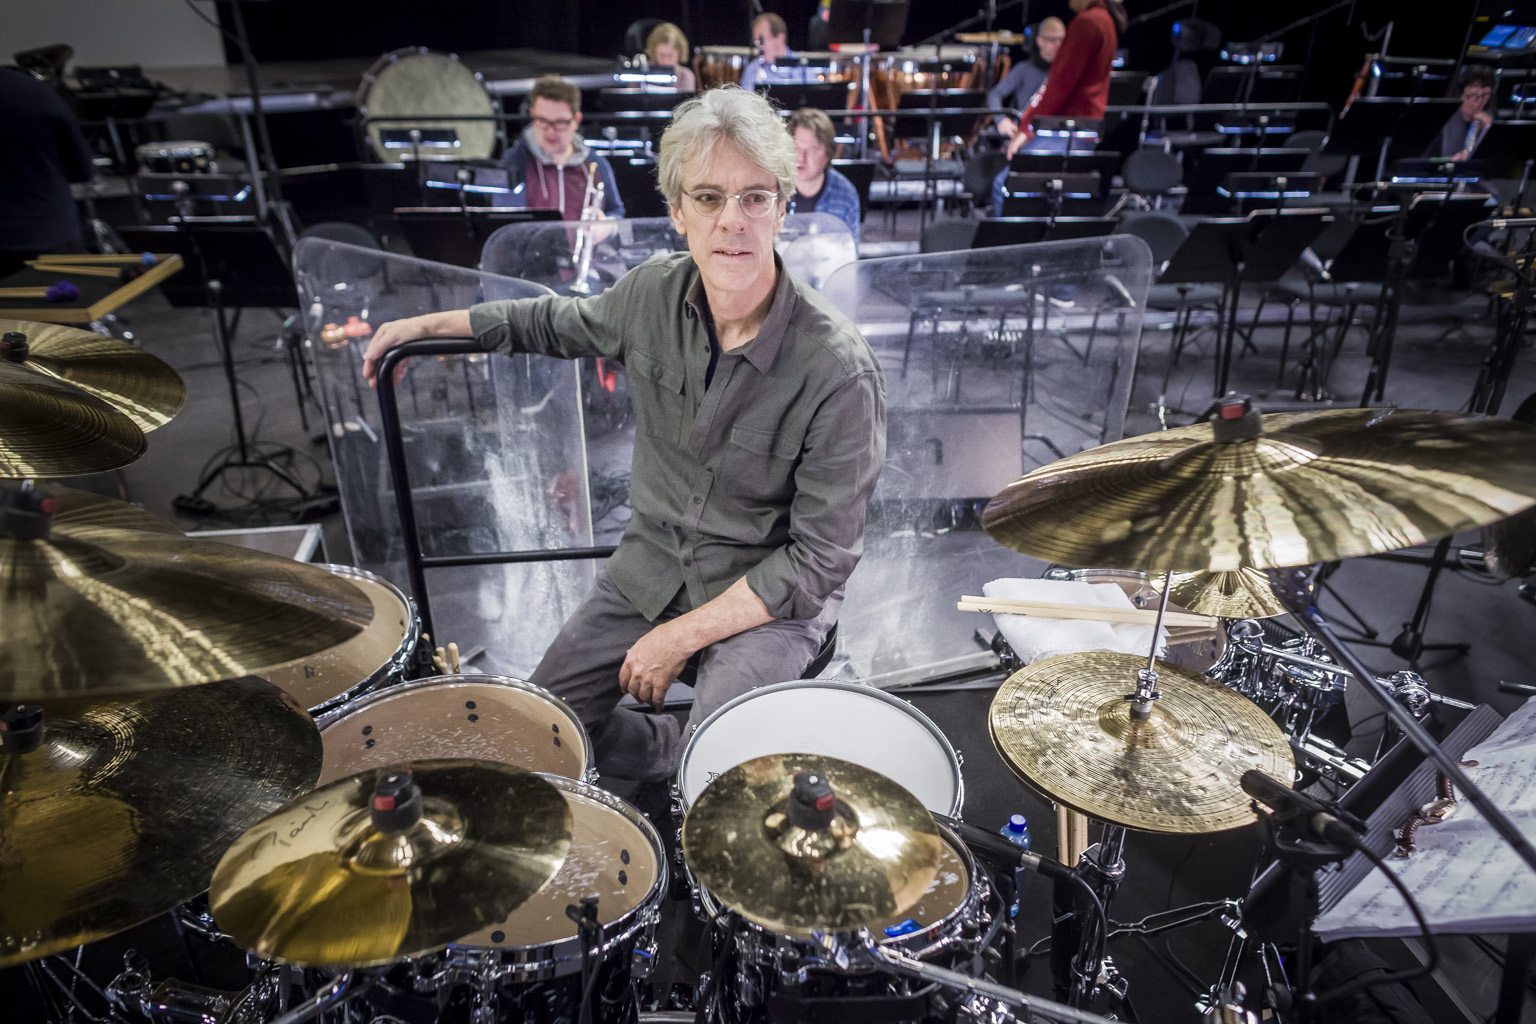 The Rhythmatist's Method: Stewart Copeland on Restoring the 1925 Silent Film Ben-Hur, That Snare Drum Sound & a Few Police Matters